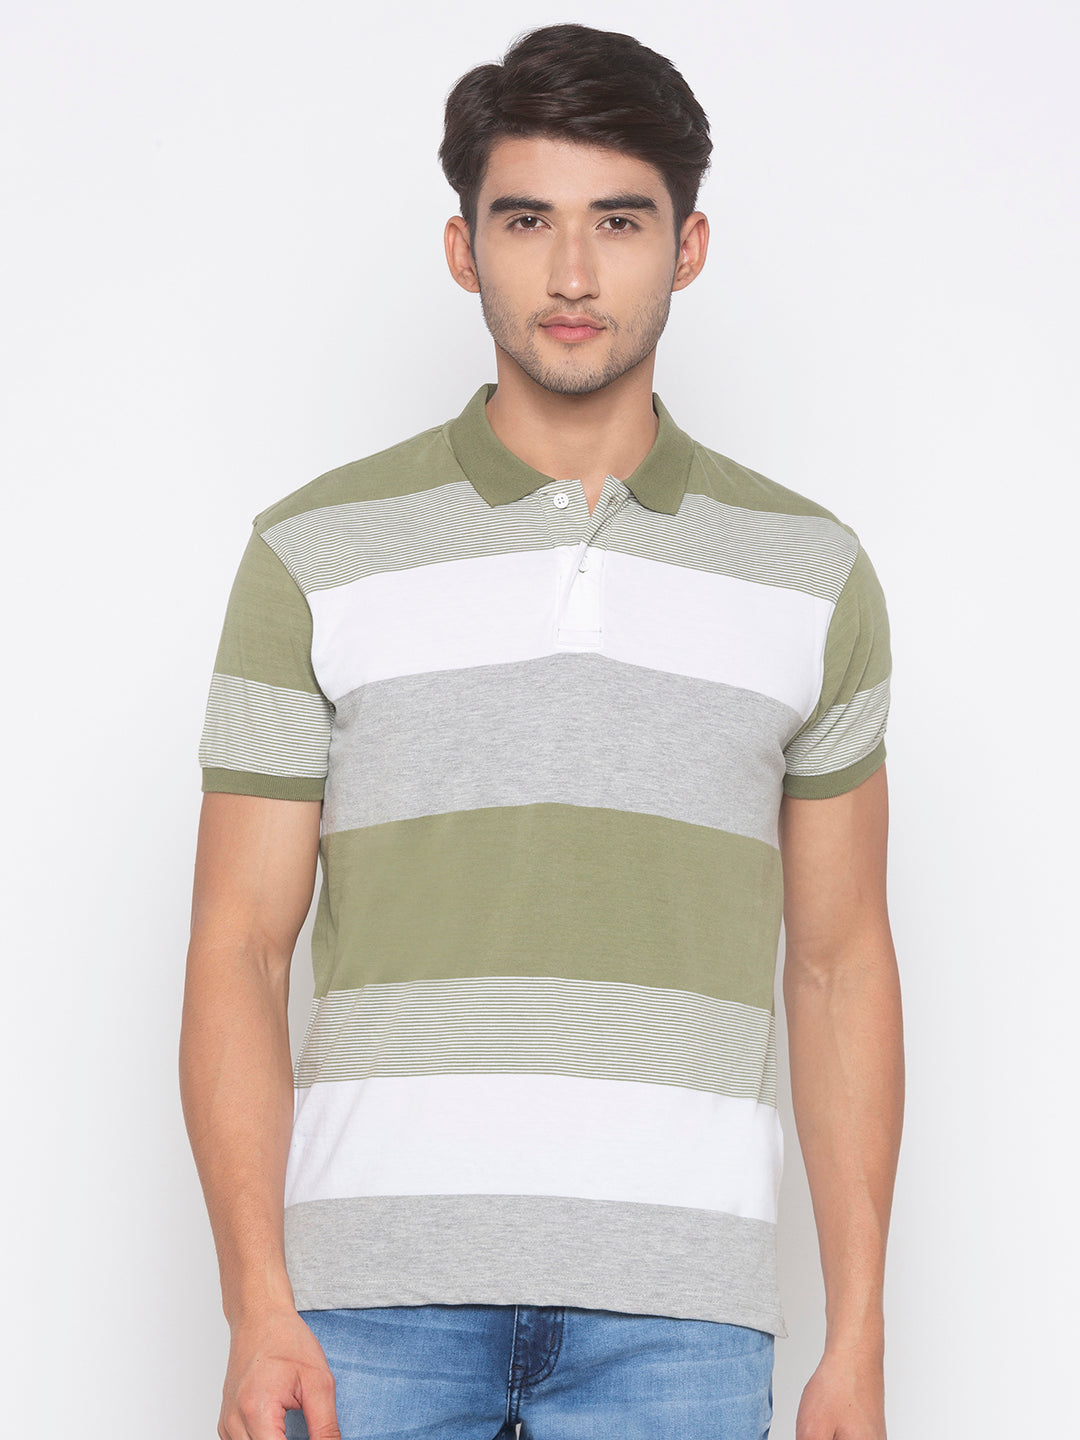 Globus Olive & White Striped T-Shirt-1